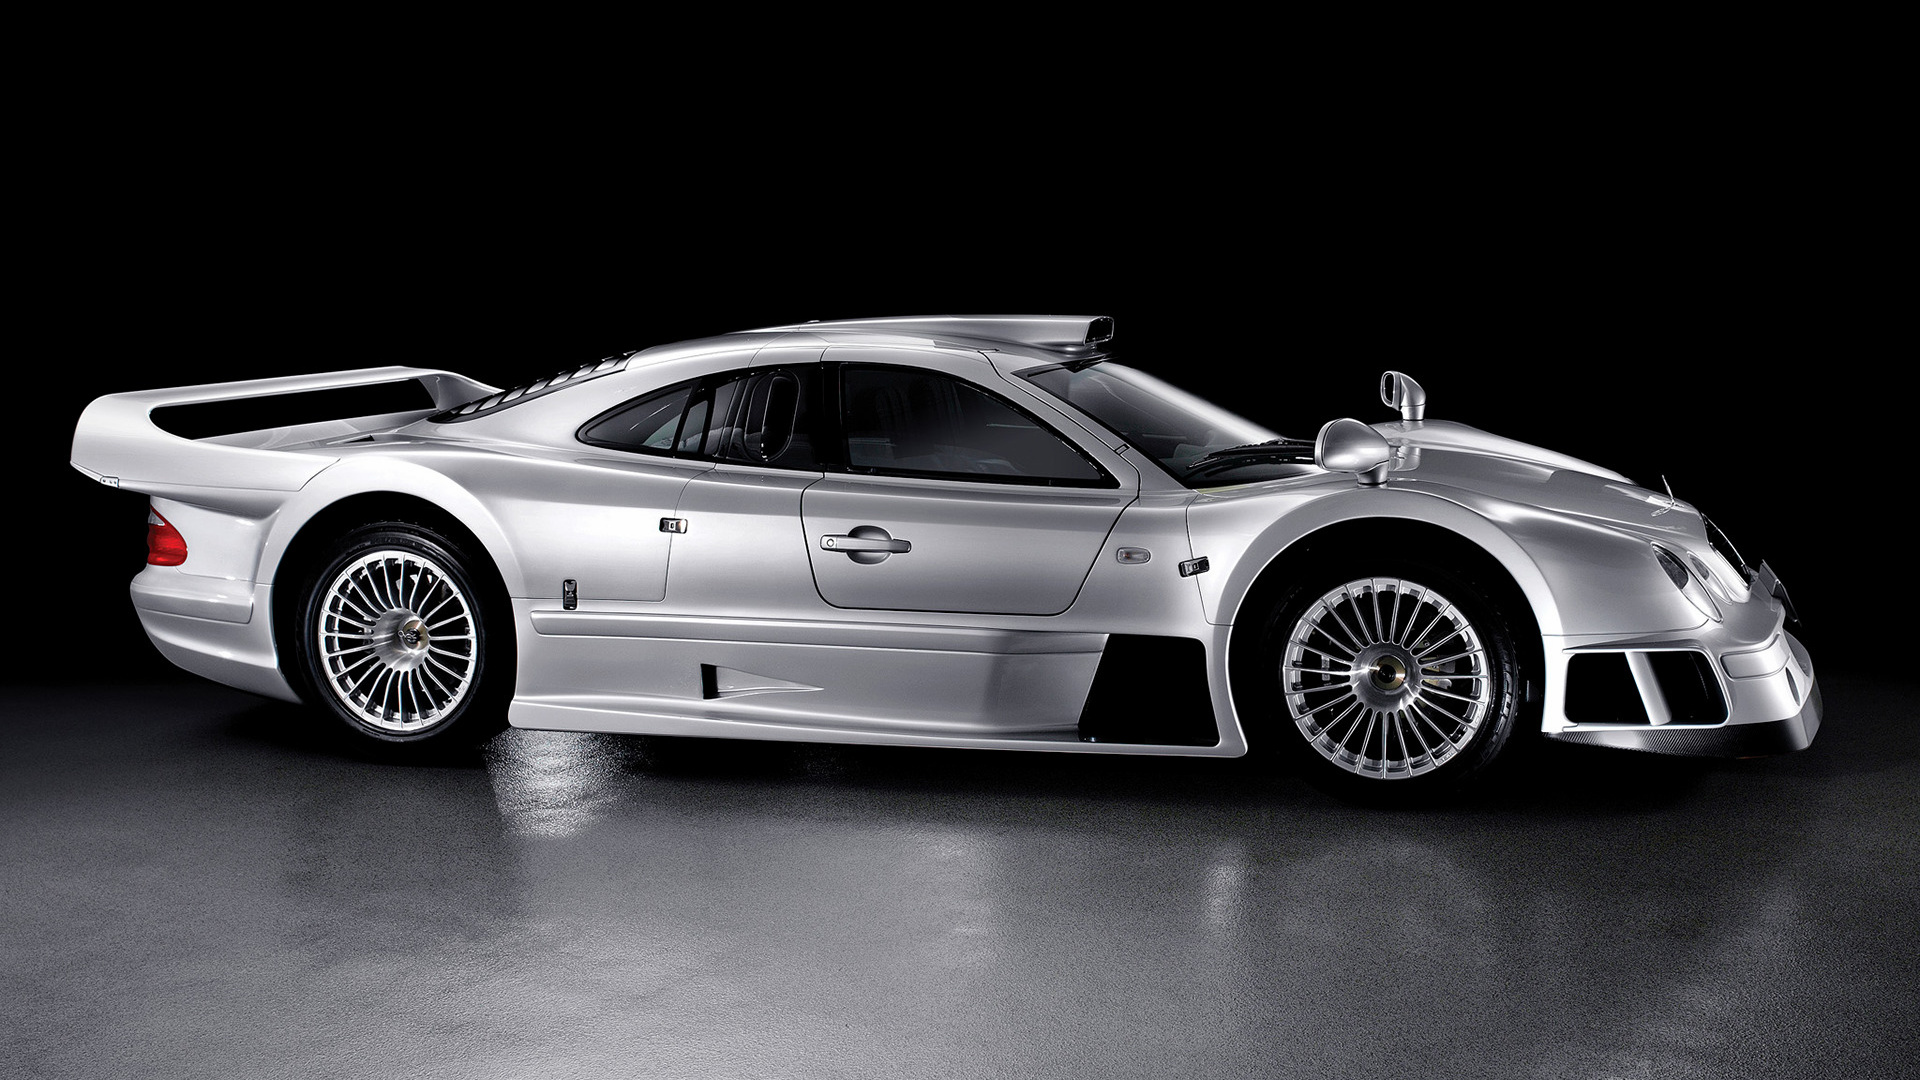 Mercedes benz clk gtr road car rhd 2005 wallpapers and for Mercedes benz clk